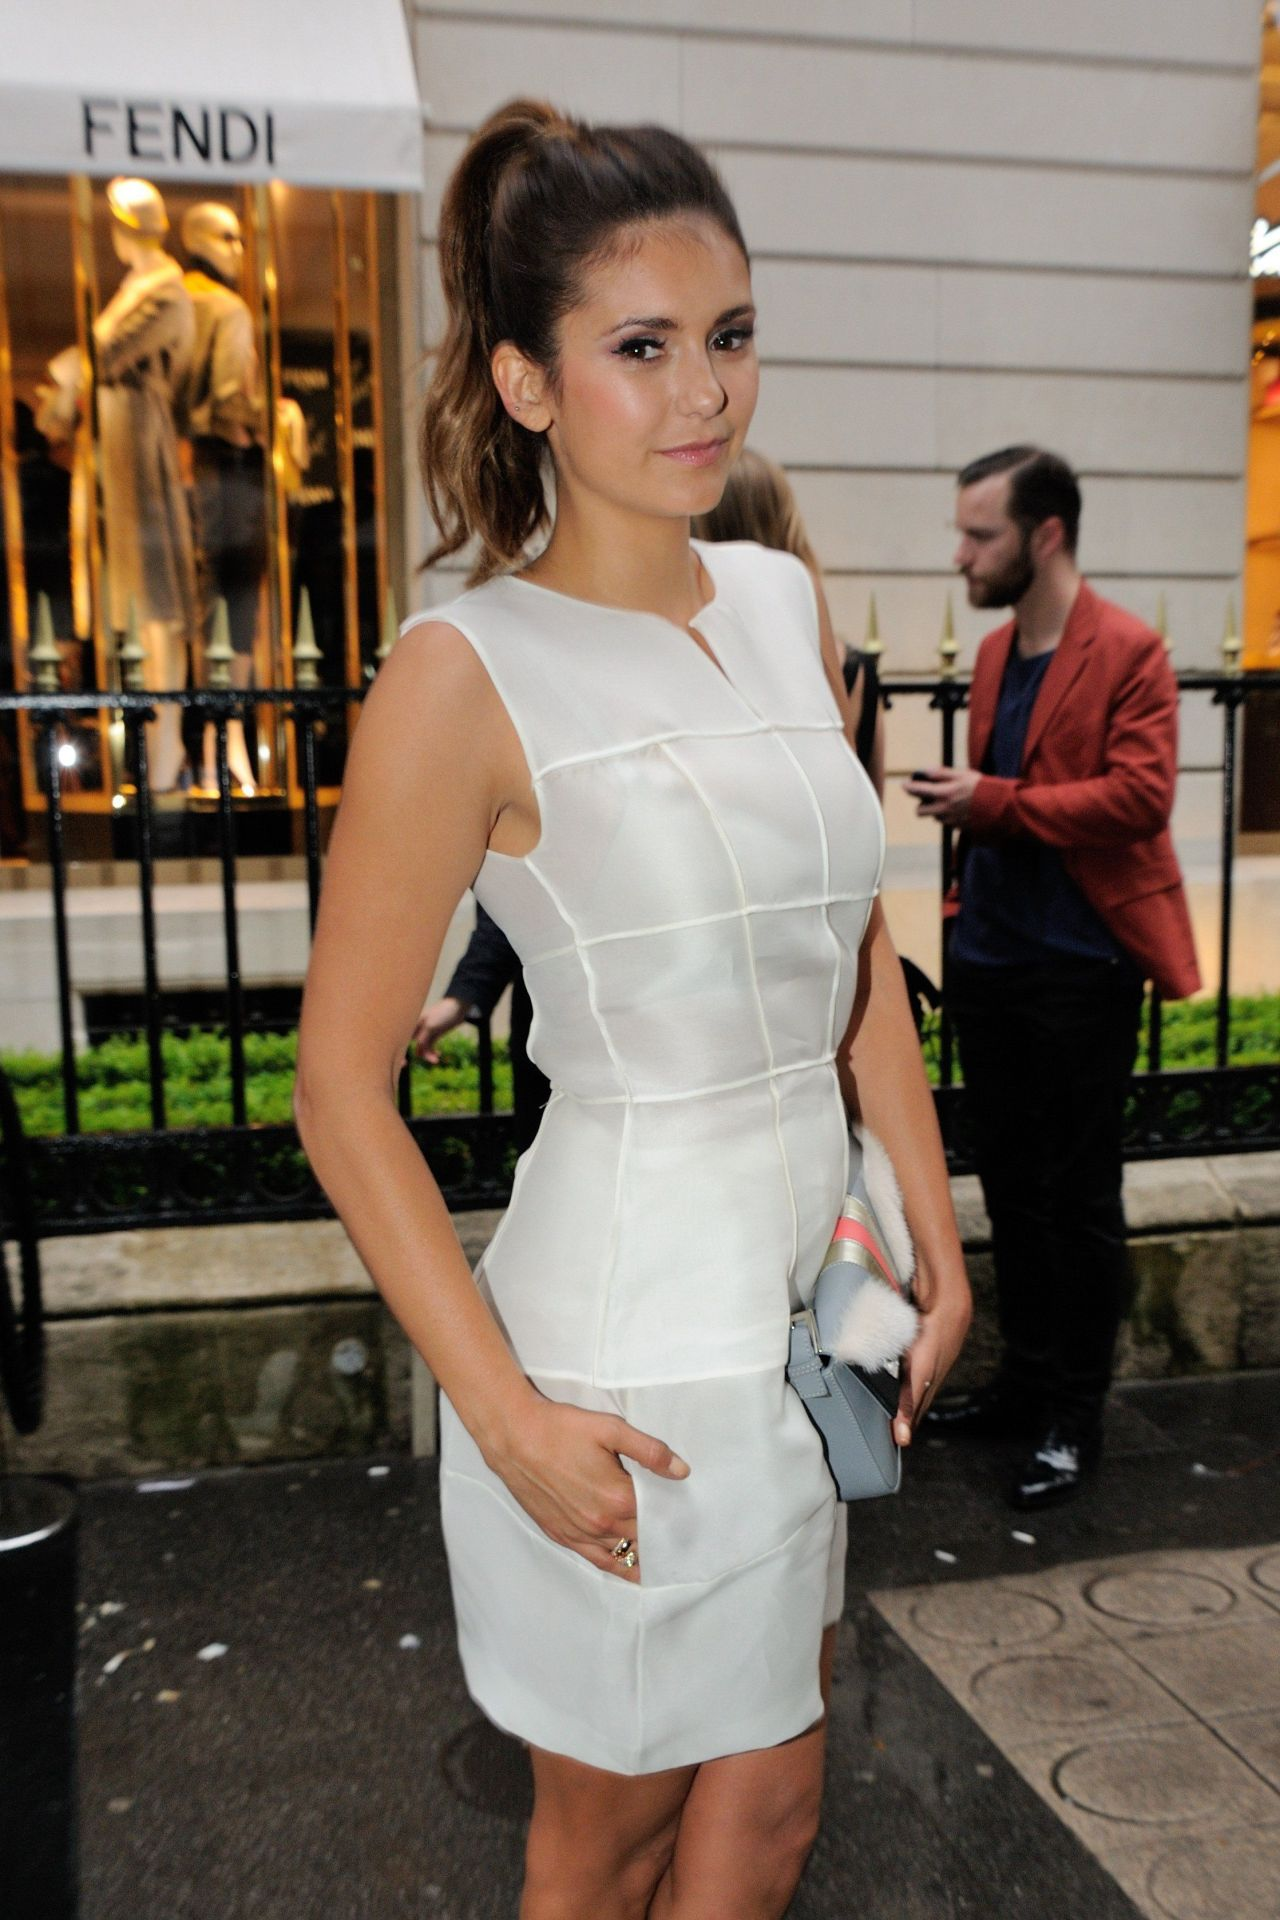 Nina Dobrev - Fendi Karlito Cocktail Party in Paris - July 2014